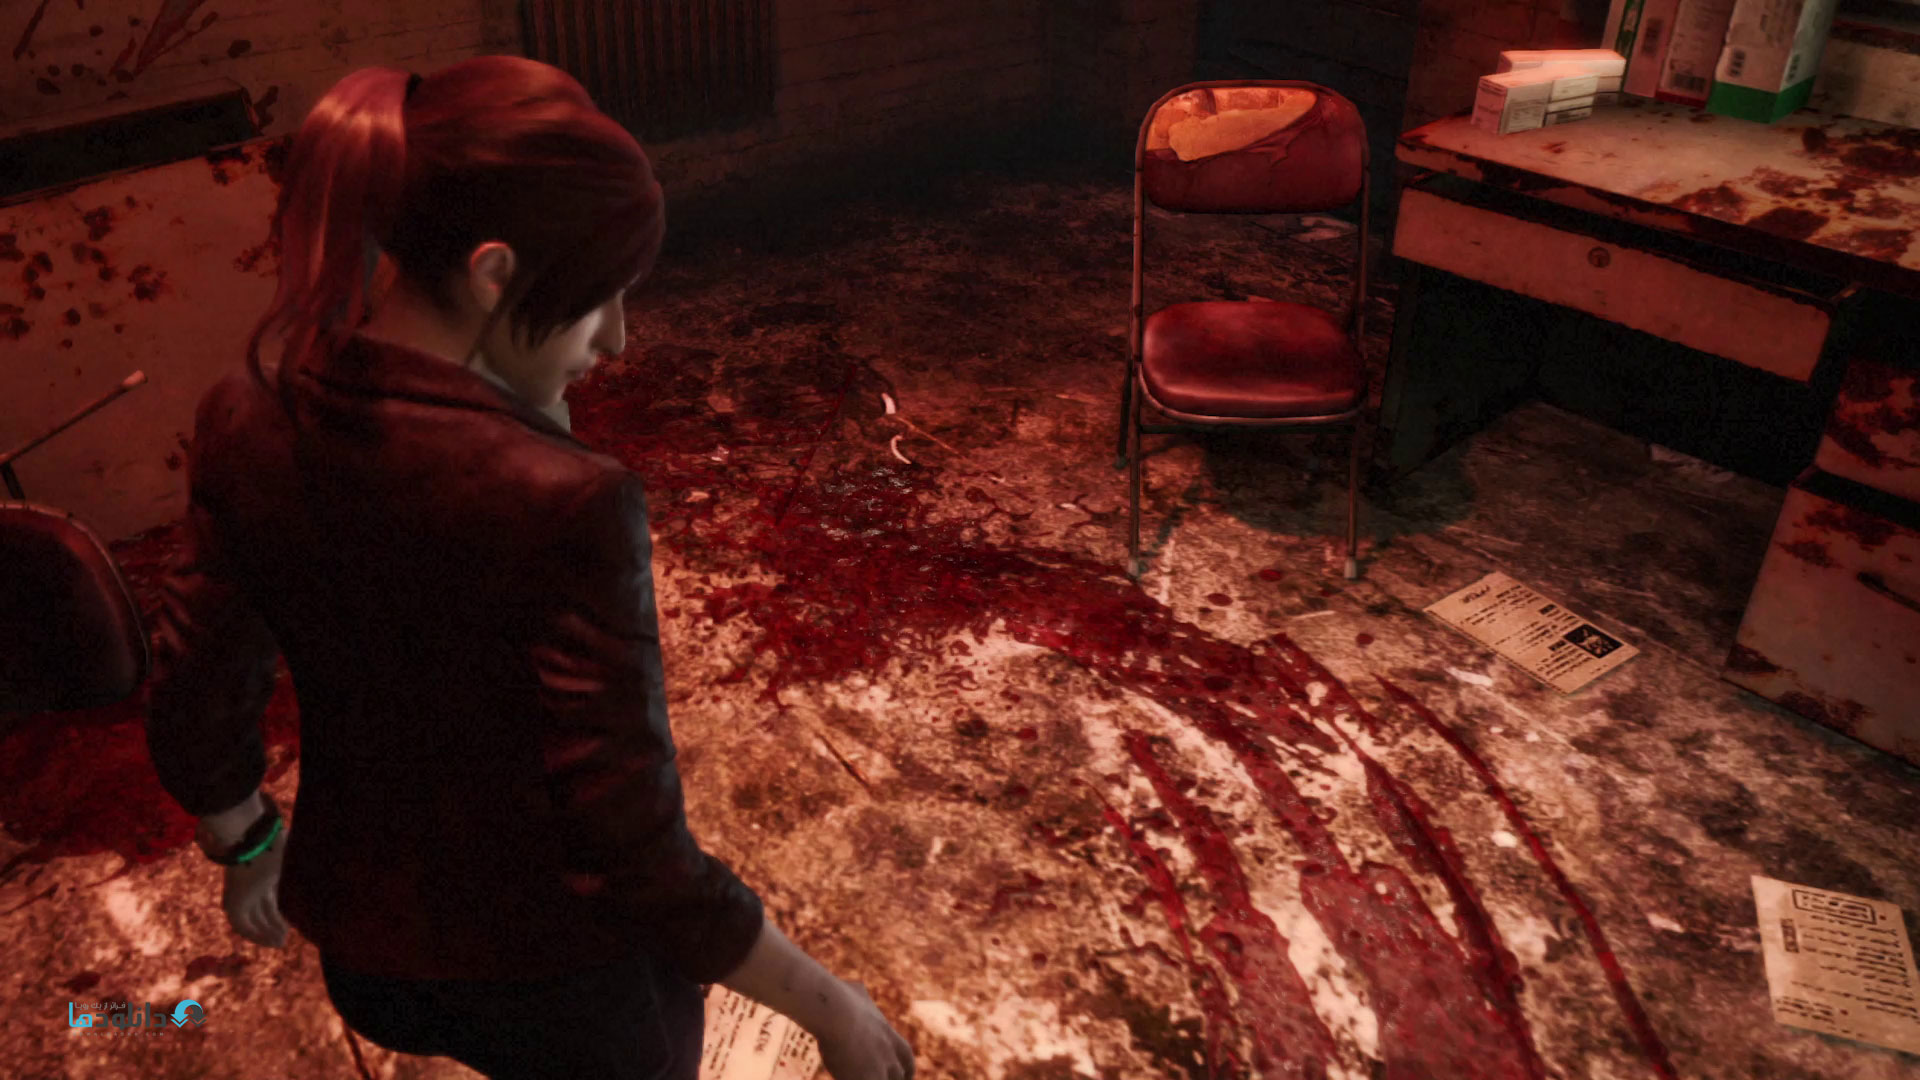 http://img5.downloadha.com/hosein/Game/February%202015/25/Resident-Evil-Revelations-2-Episode-1-screenshots-01-large.jpg